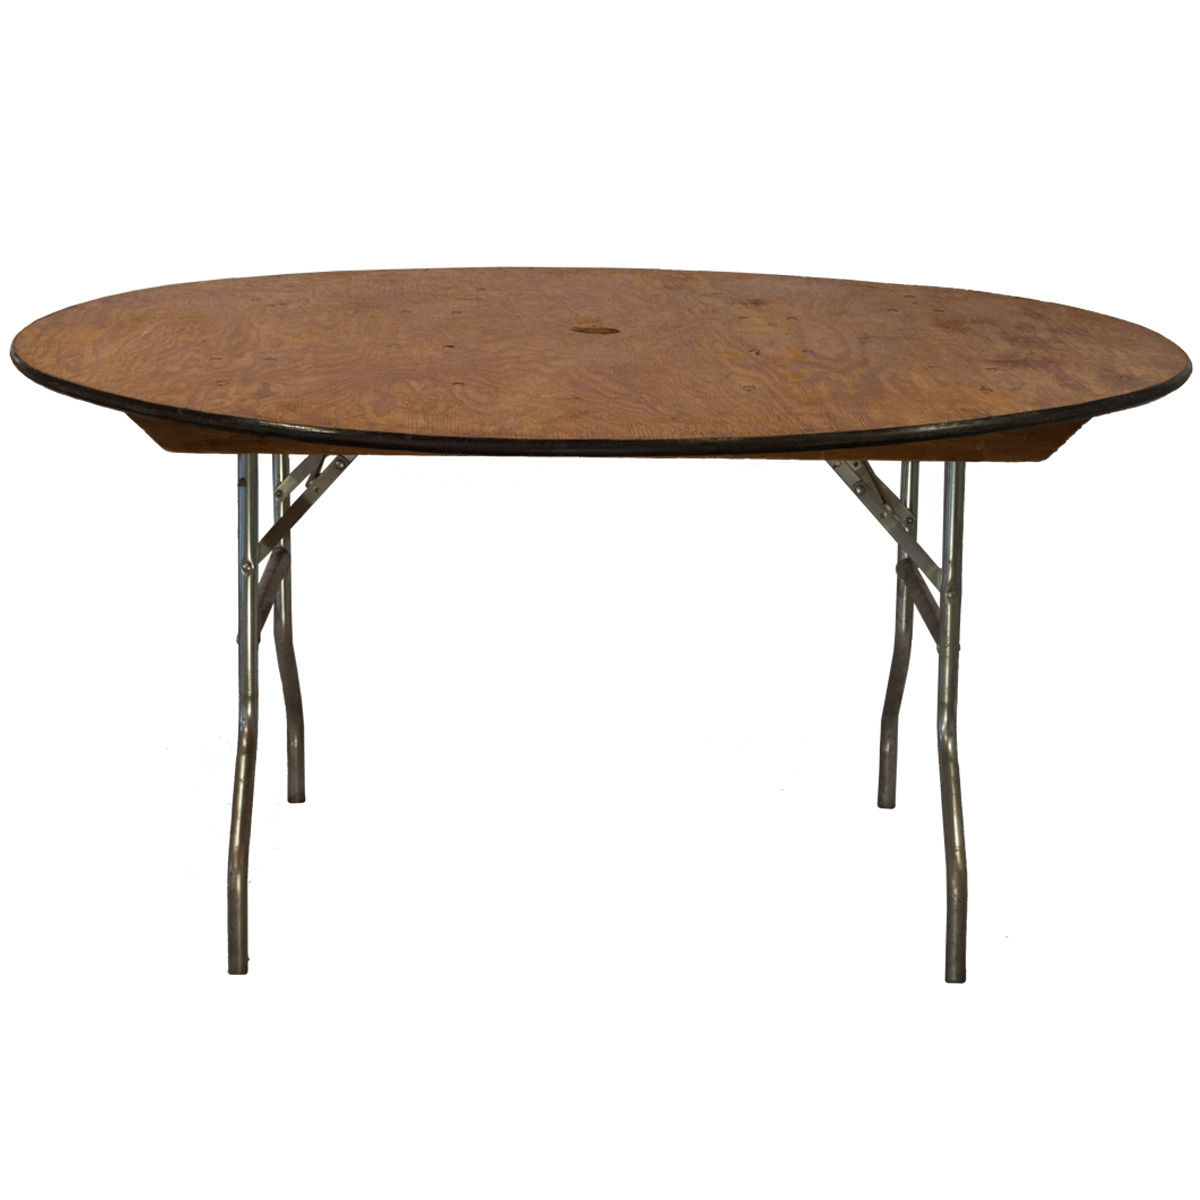 Tables Archives Celebrations Party Rentals - 36 inch round conference table